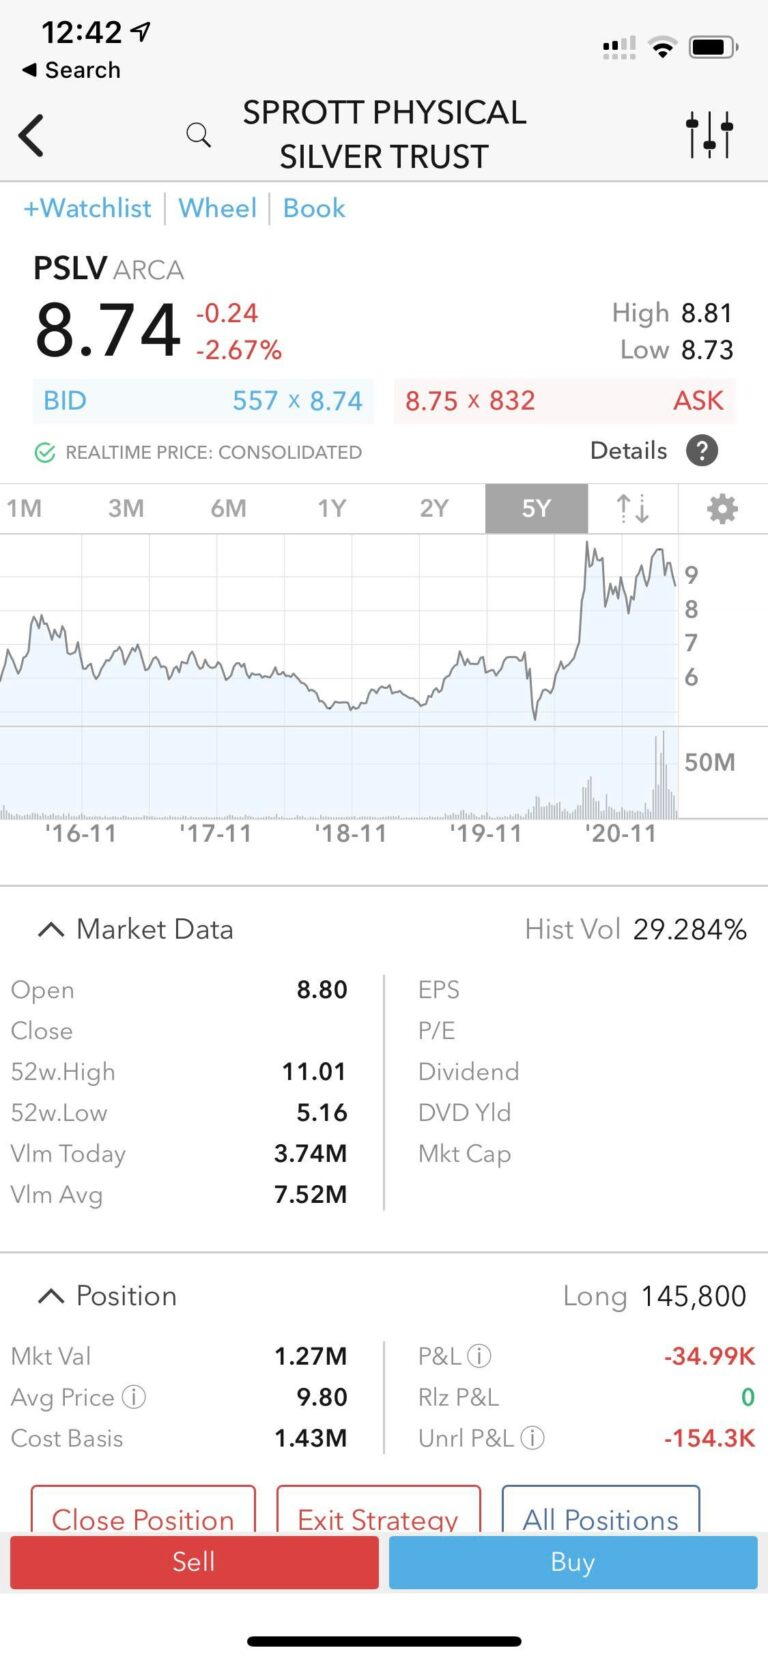 So far I bought 145,800 shares in PSLV (52,400 Oz) and 2,200 Oz physical. Happy silver raid March 31 and April 1 fellow Apes!! I think the low prices the paper market is giving us warrants a CARNIVAL!! PSLV & PHYSICAL!! PROUD TO BE ON YOUR TEAM AND WE WILL WIN!!!! 🚀🚀🚀